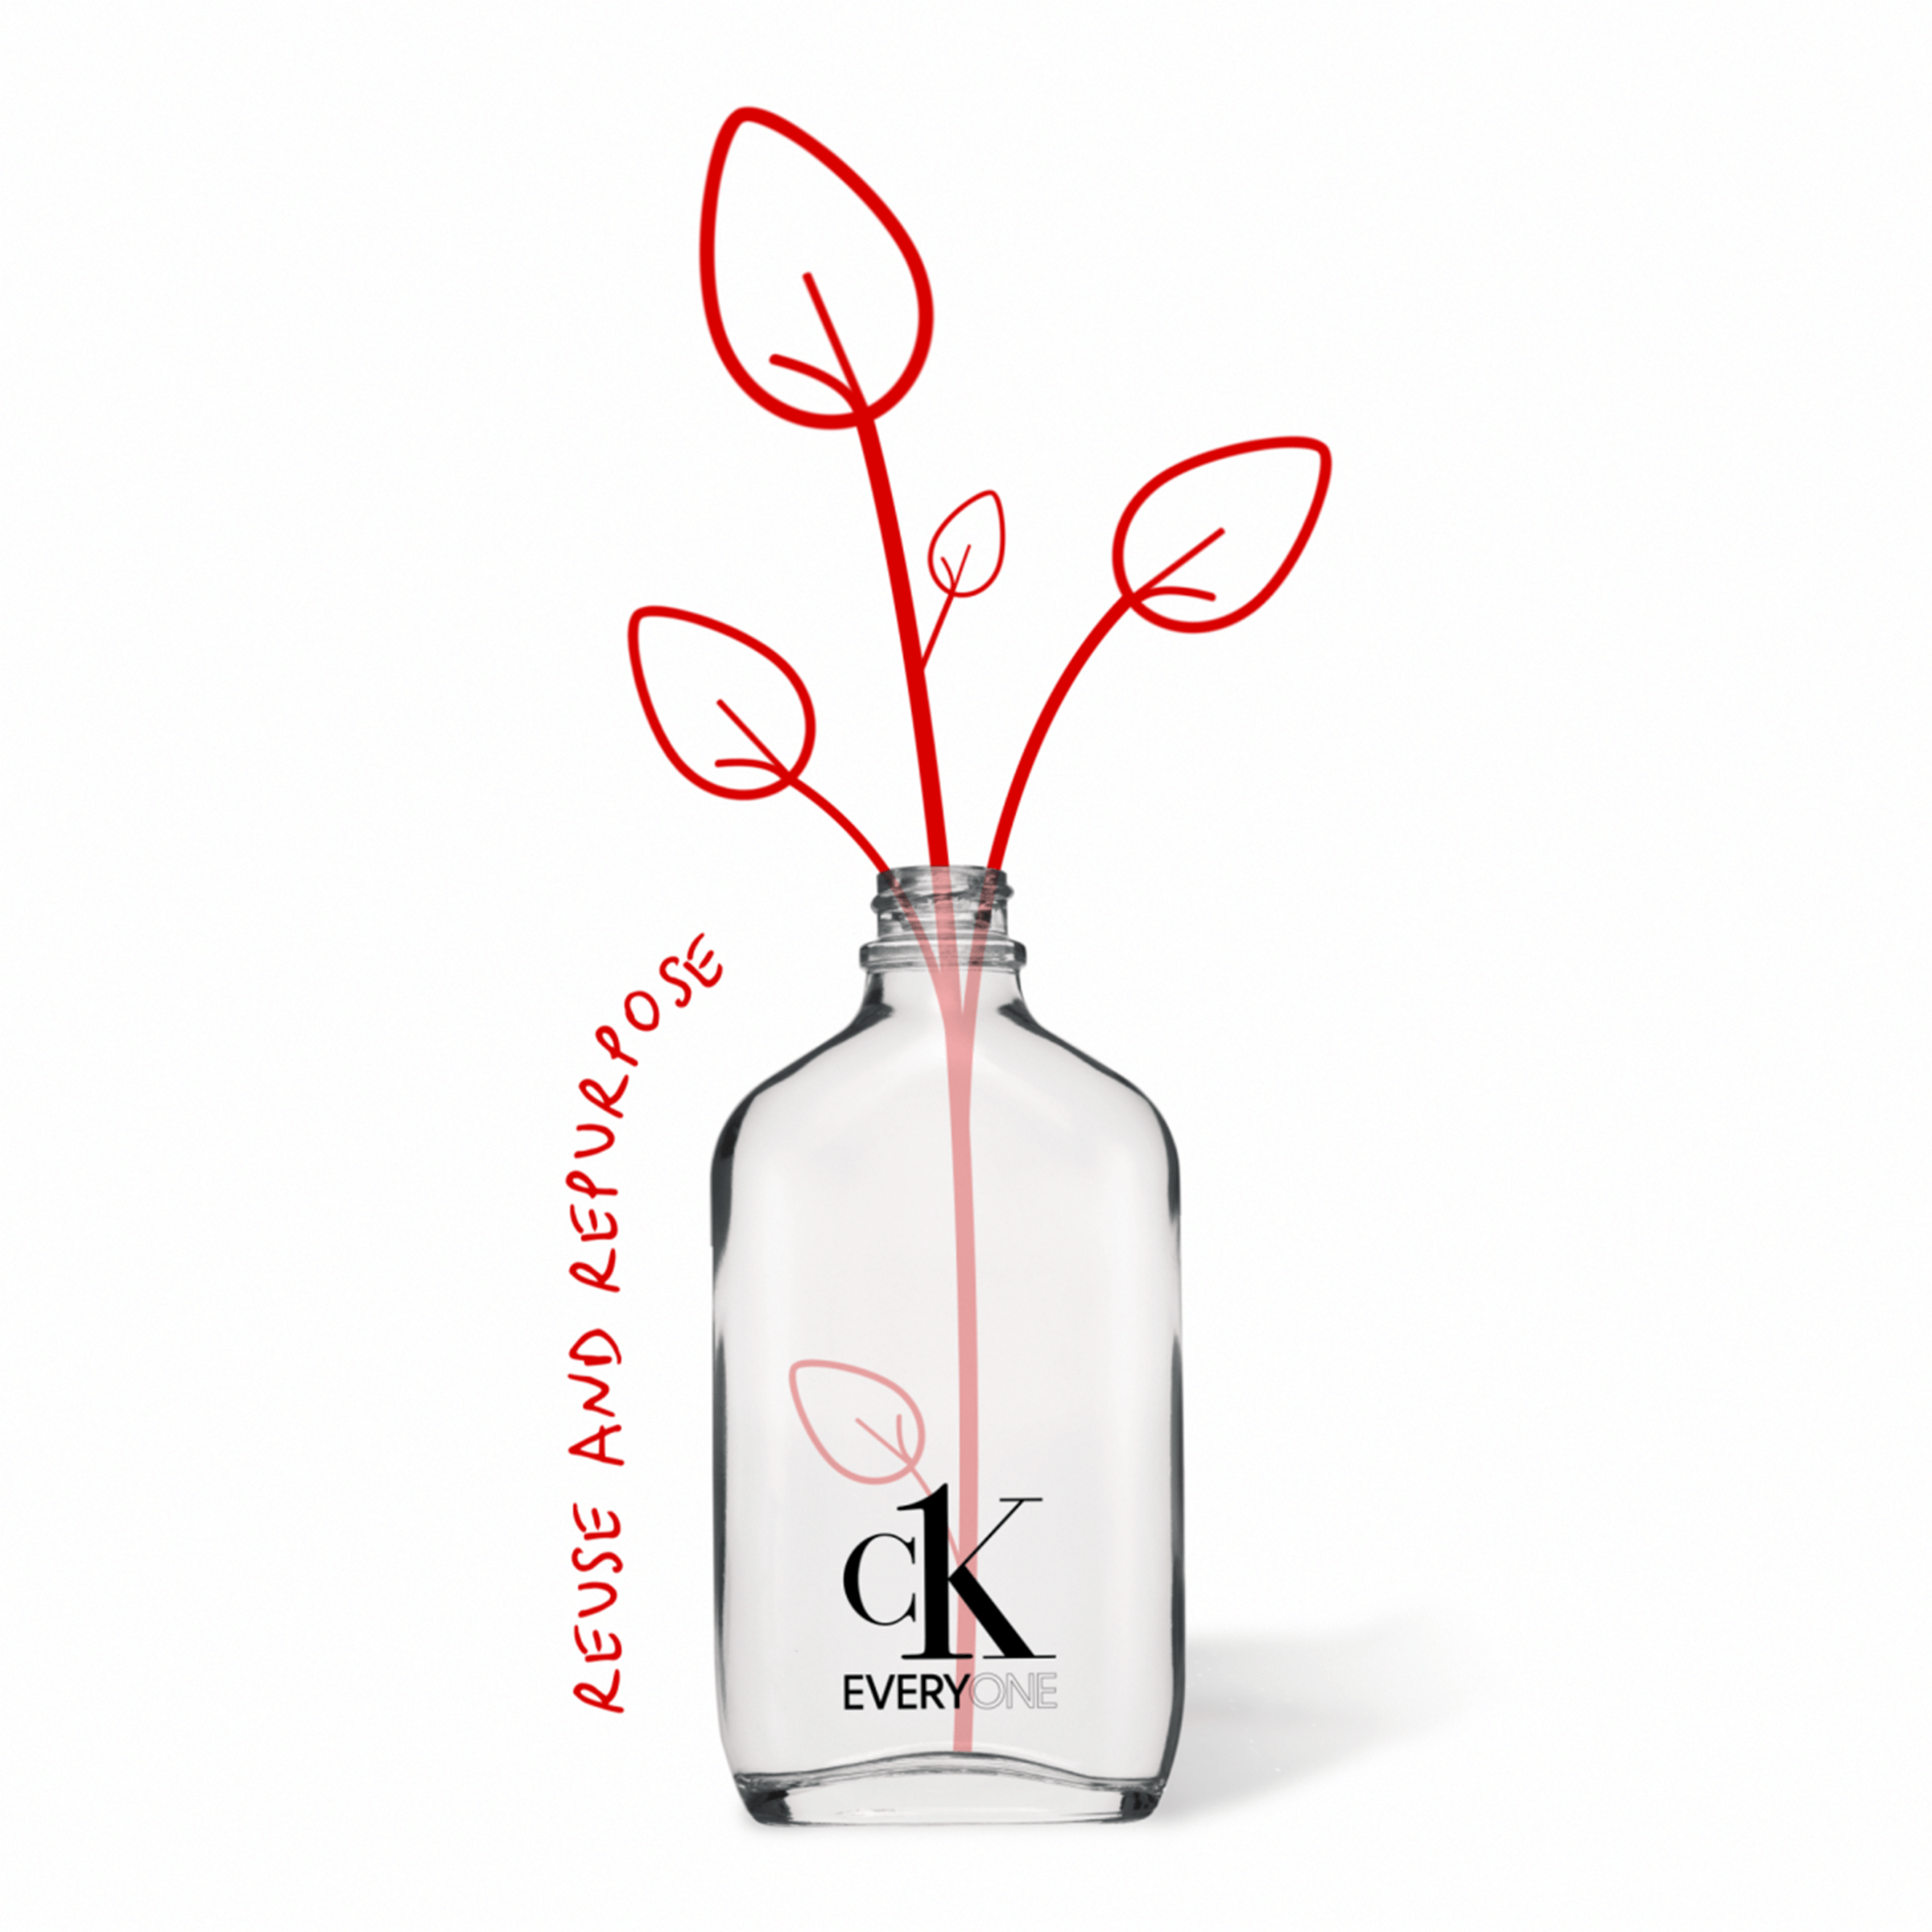 CK Everyone's bottle is recyclable